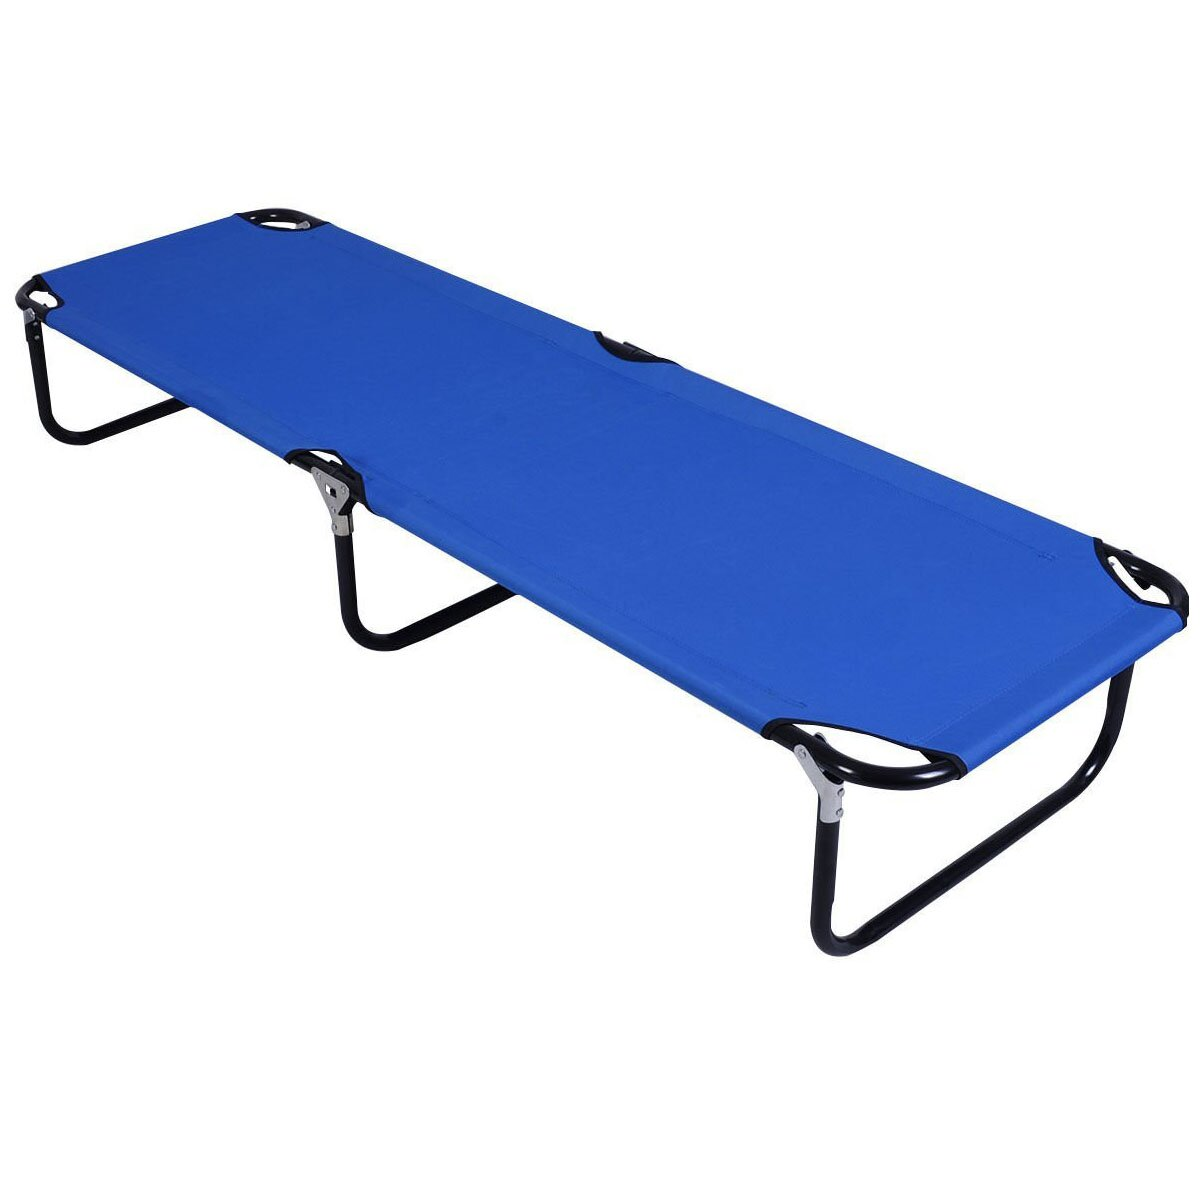 Gymax Folding Camping Bed Outdoor Military Cot Sleeping Blue by Gymax